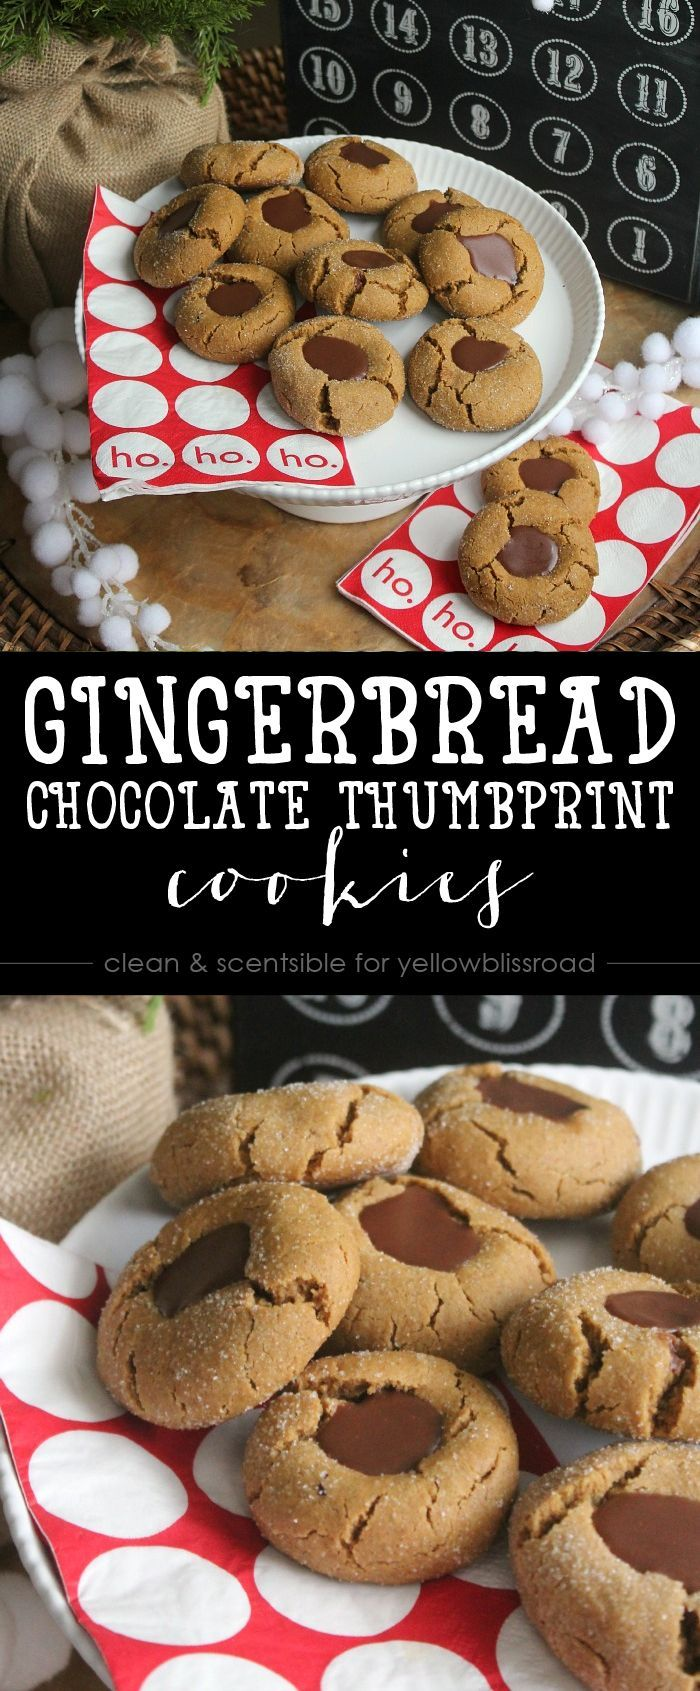 Gingerbread Chocolate Thumbprint Cookies